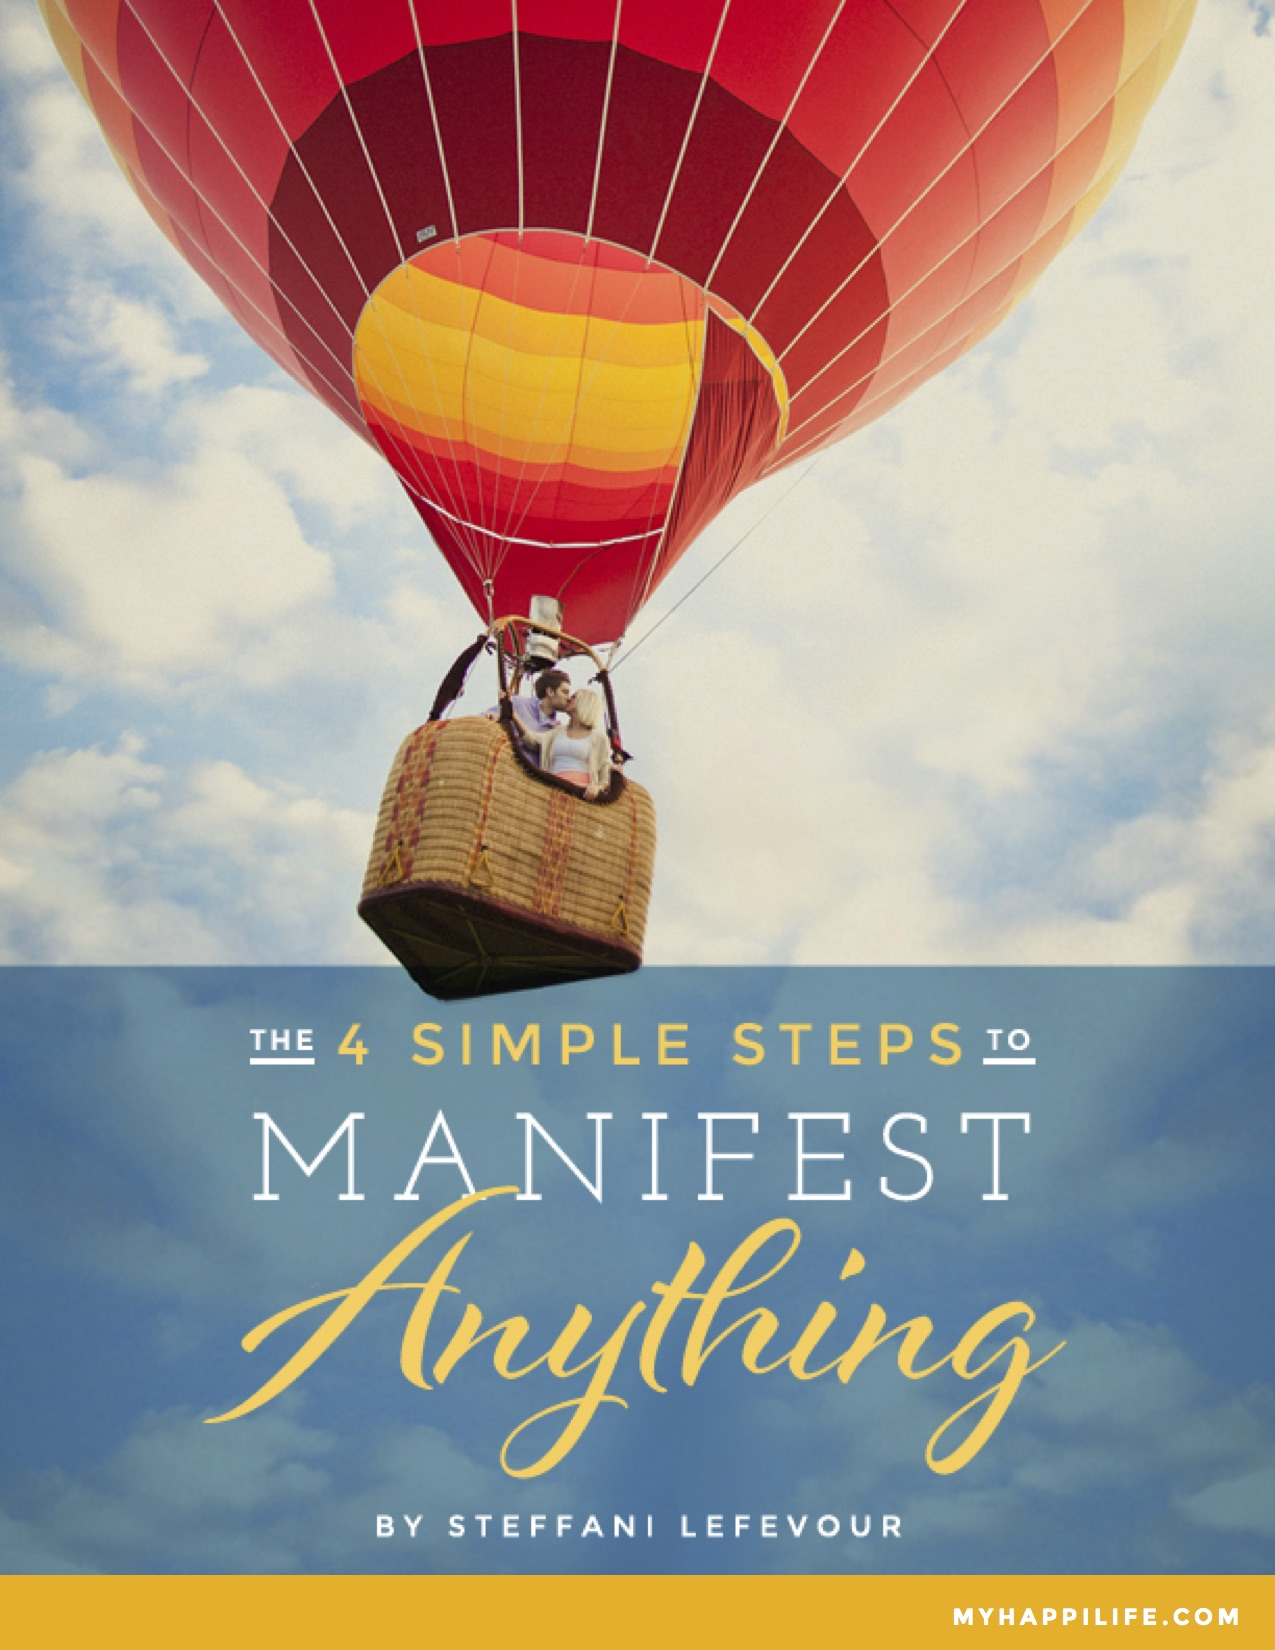 The 4 Simple Steps to Manifest Anything